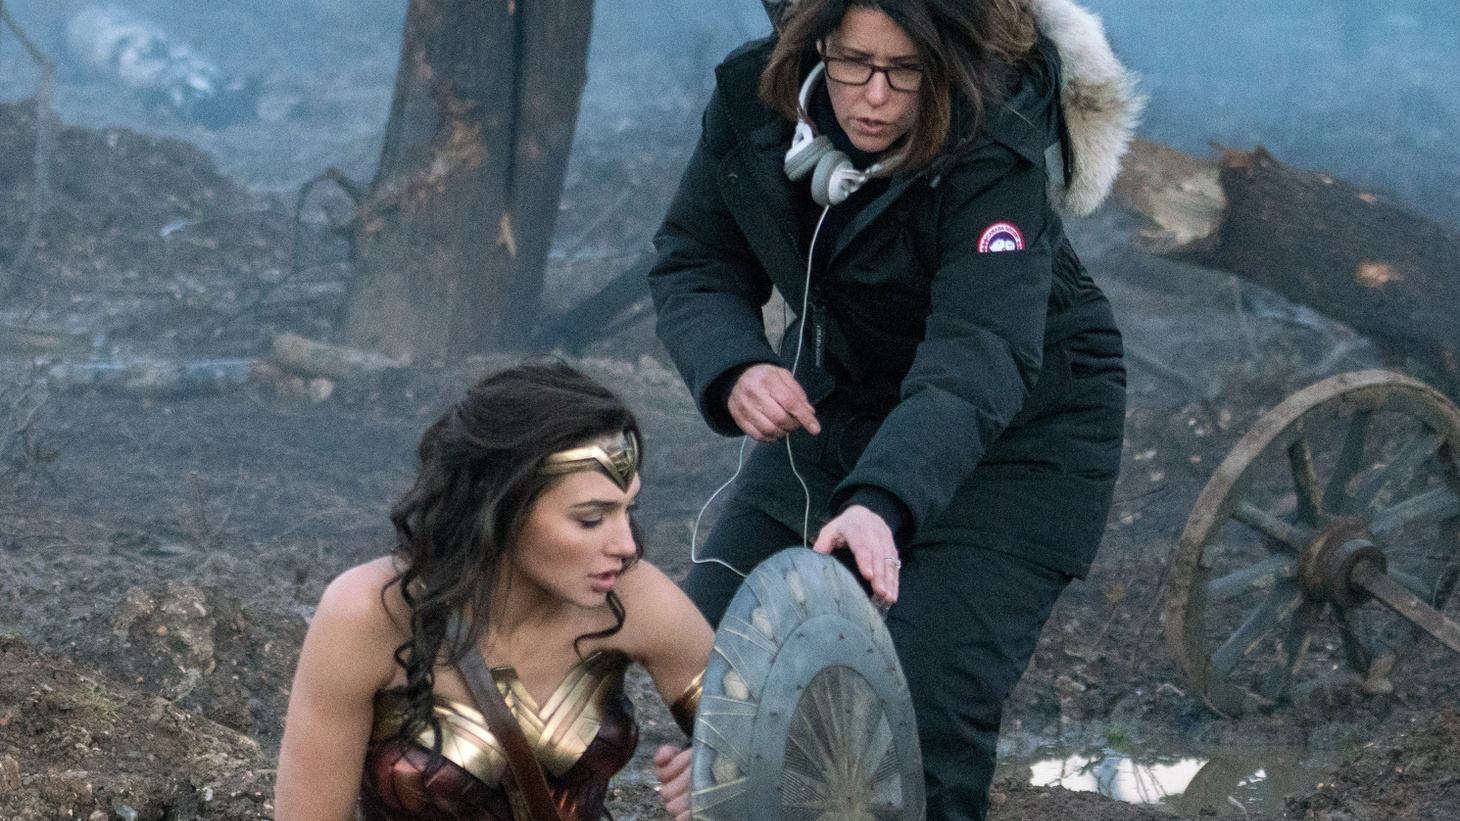 Director Patty Jenkins joins the DC Comics world with her take on Wonder Woman.